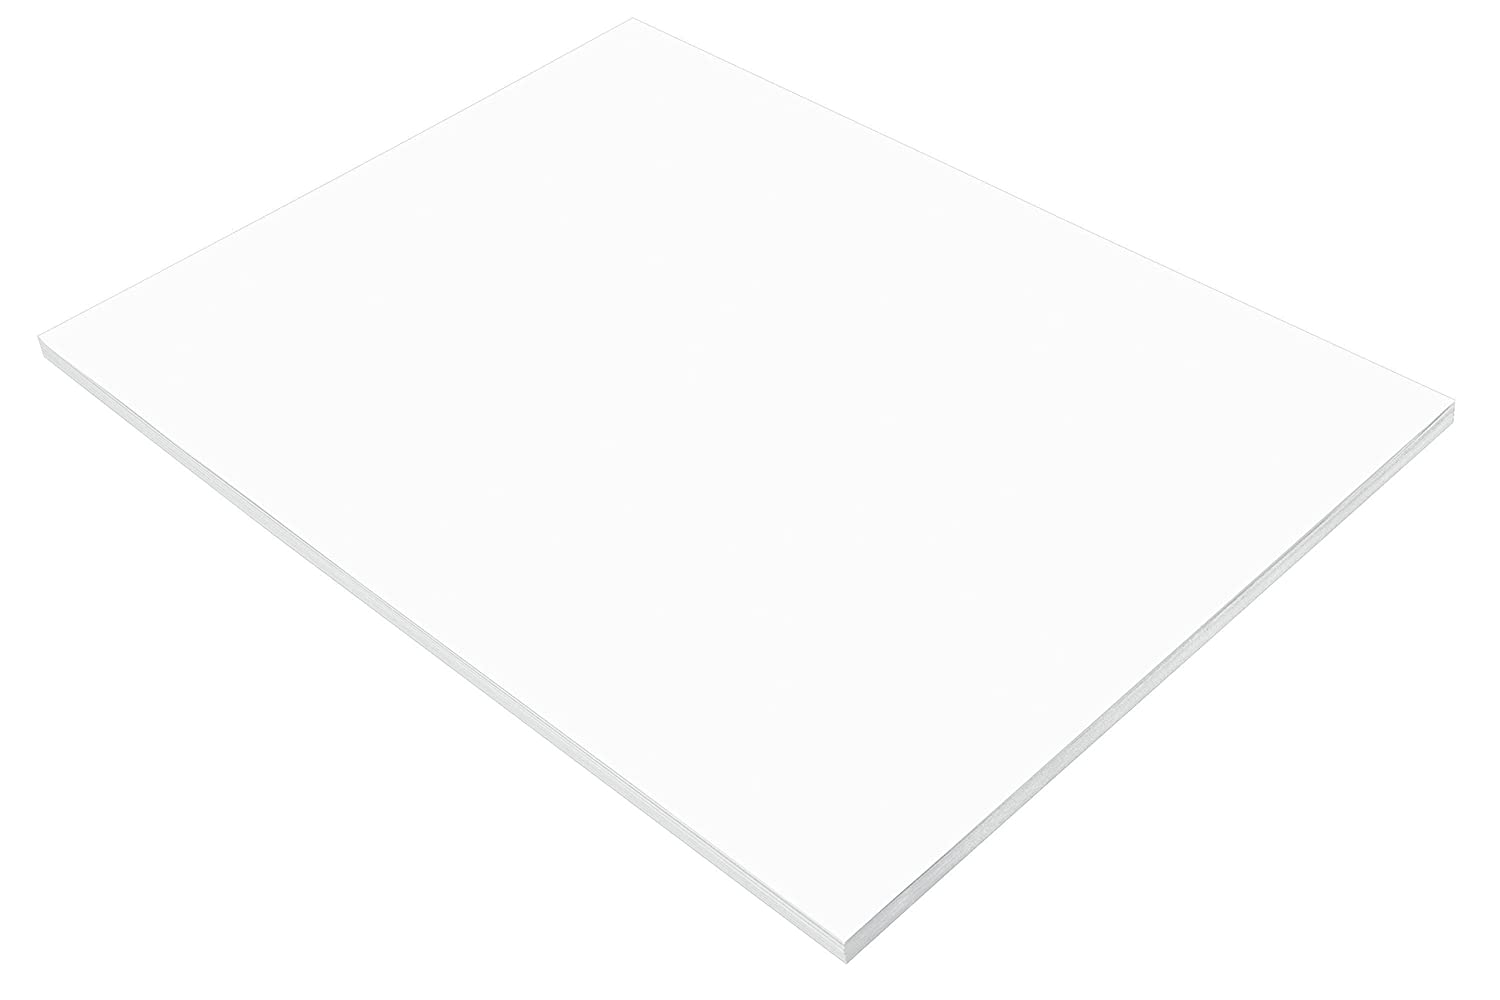 Pacon SunWorks Construction Paper, 18 x 24, 50-Count, Bright White (8717) 18 x 24 Pacon Corp.